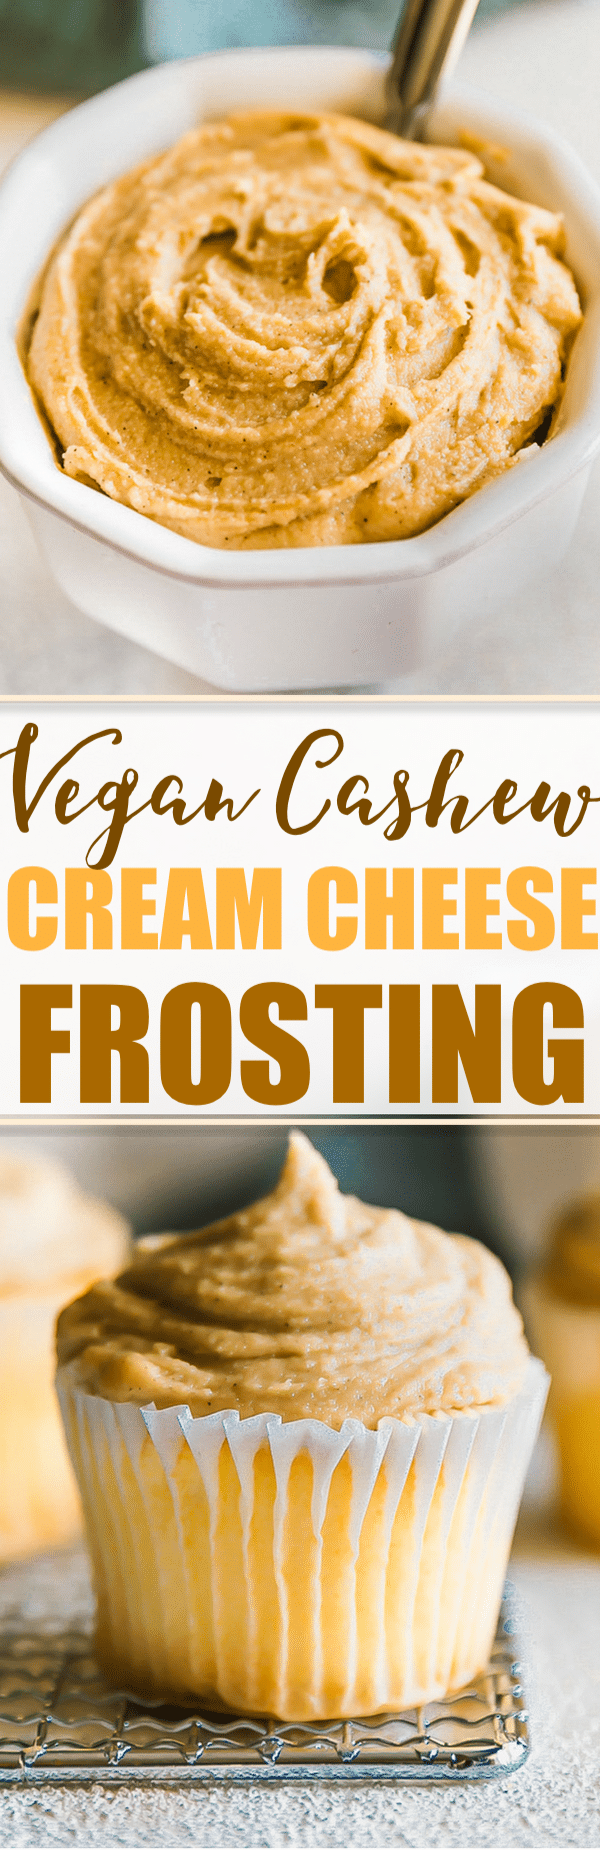 Super Simple and Easy to make Vegan Maple Cashew Cream Cheese Frosting! Paleo friendly and delicious dairy free cream cheese frosting alternative! #vegan #paleo #frosting